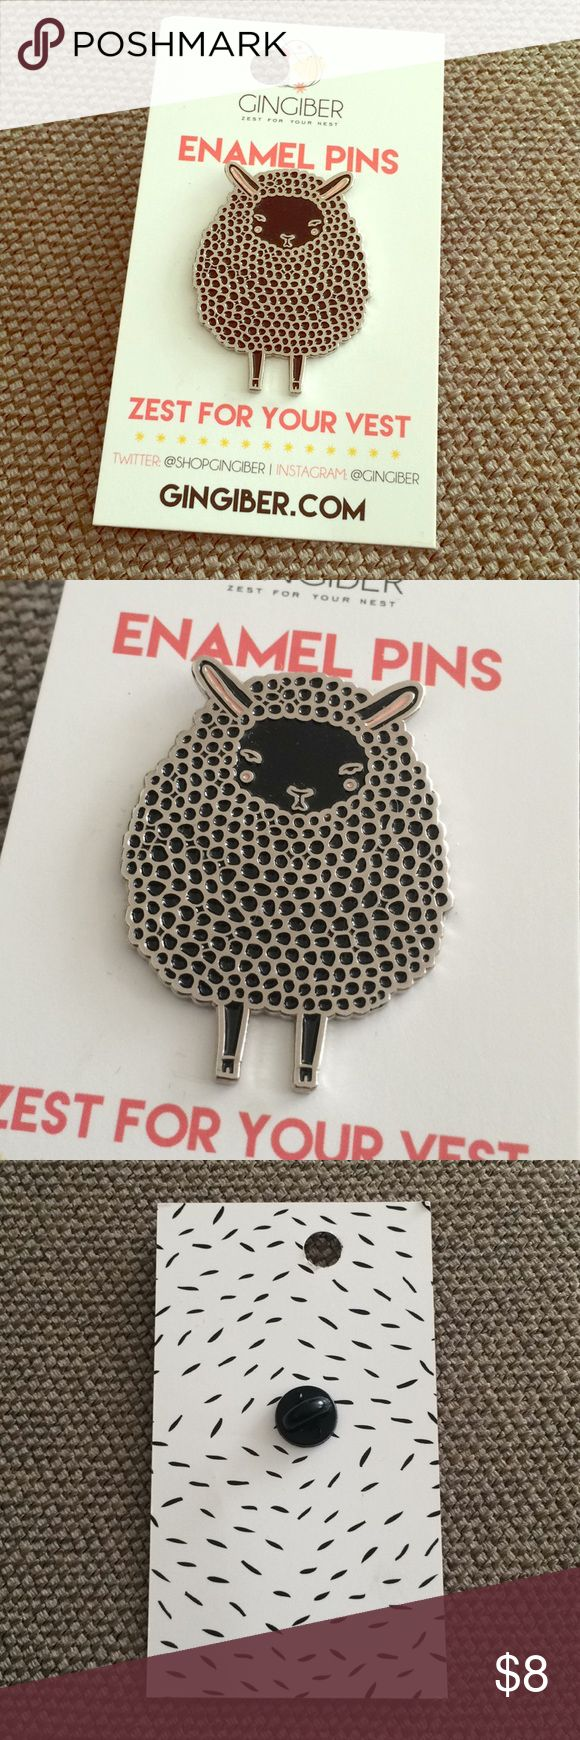 Enamel sheep pin, brand new from Gingiber  Zest for your vest! Brand new/never worn cute enamel sheep pin from Arkansas stationery company Gingiber. Quarter for size comparison; about one & 1/8 inches wide.  Adorable! Offers okay, bundles better. Please ask any questions. Ships daily  Gingiber Jewelry